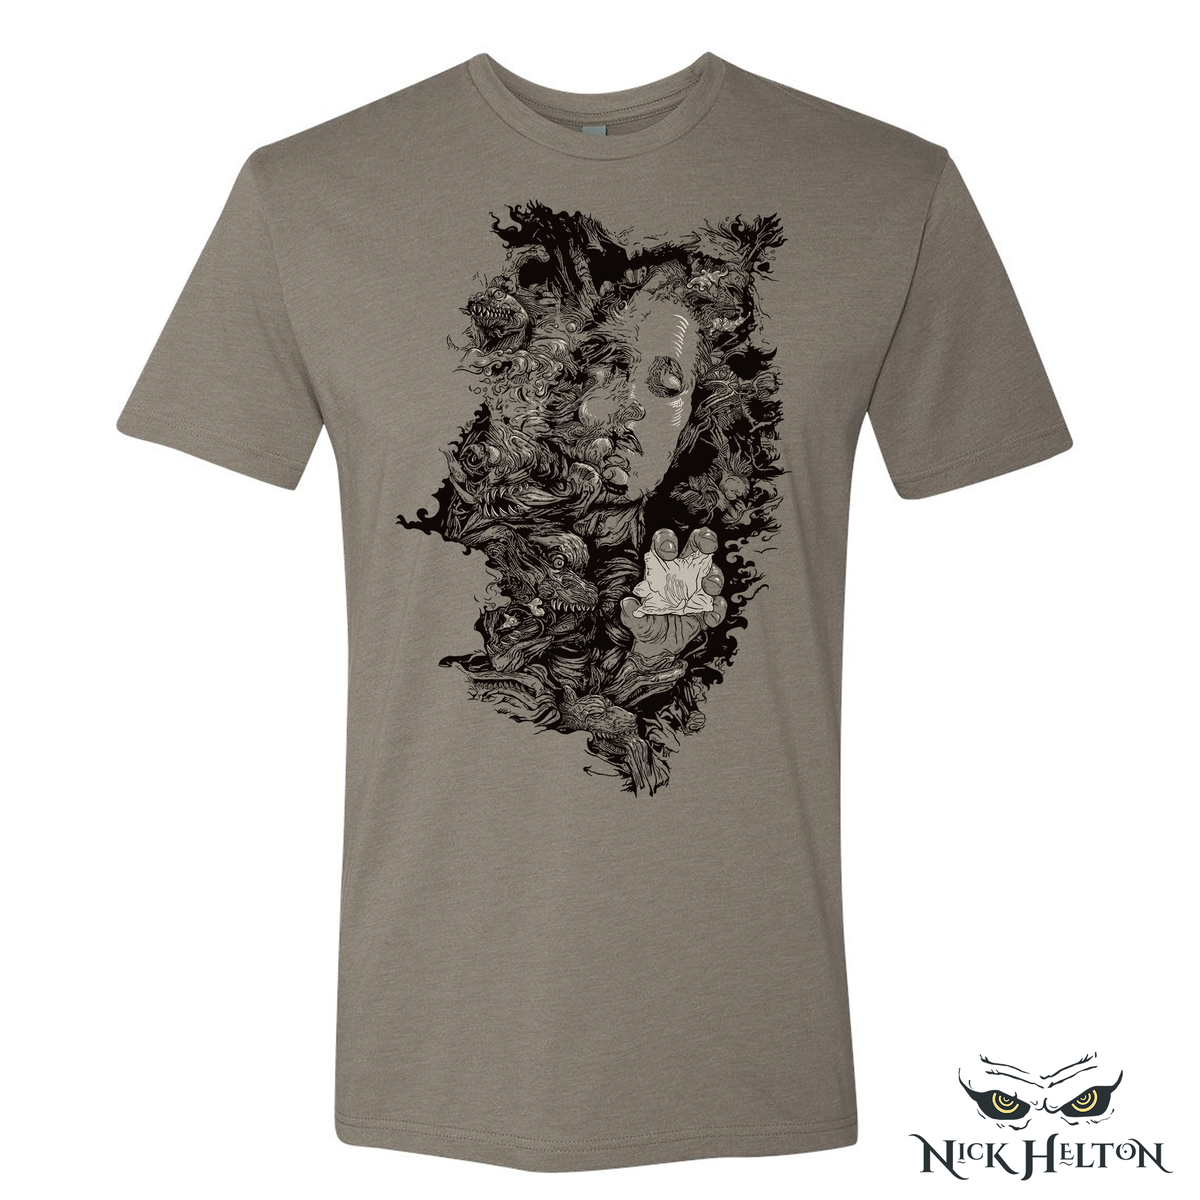 Image of The Last Temptation T-Shirt